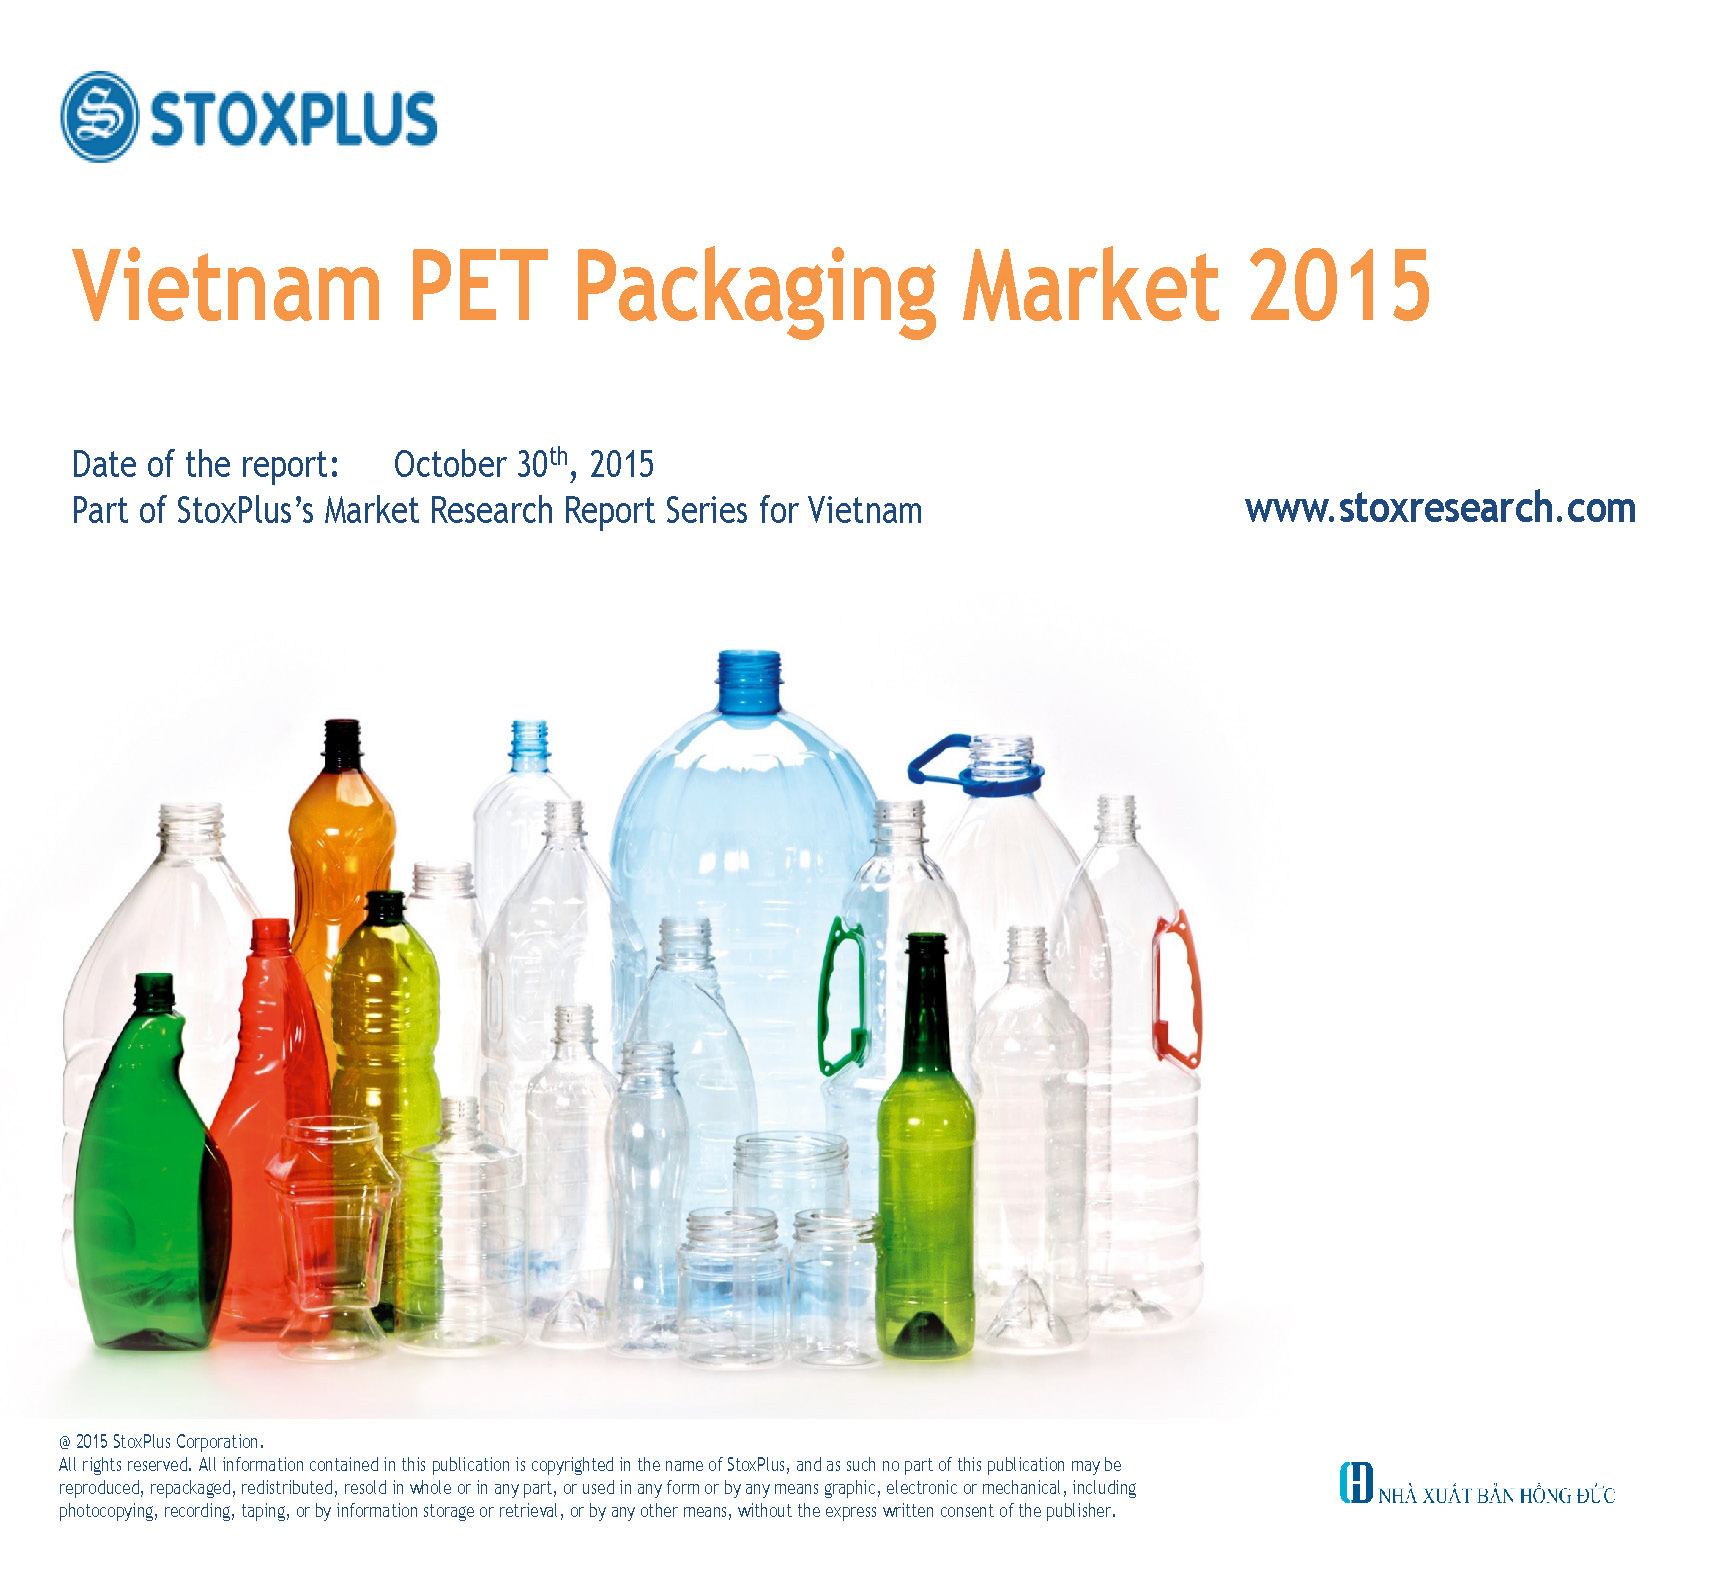 Vietnam PET Packaging Market 2015